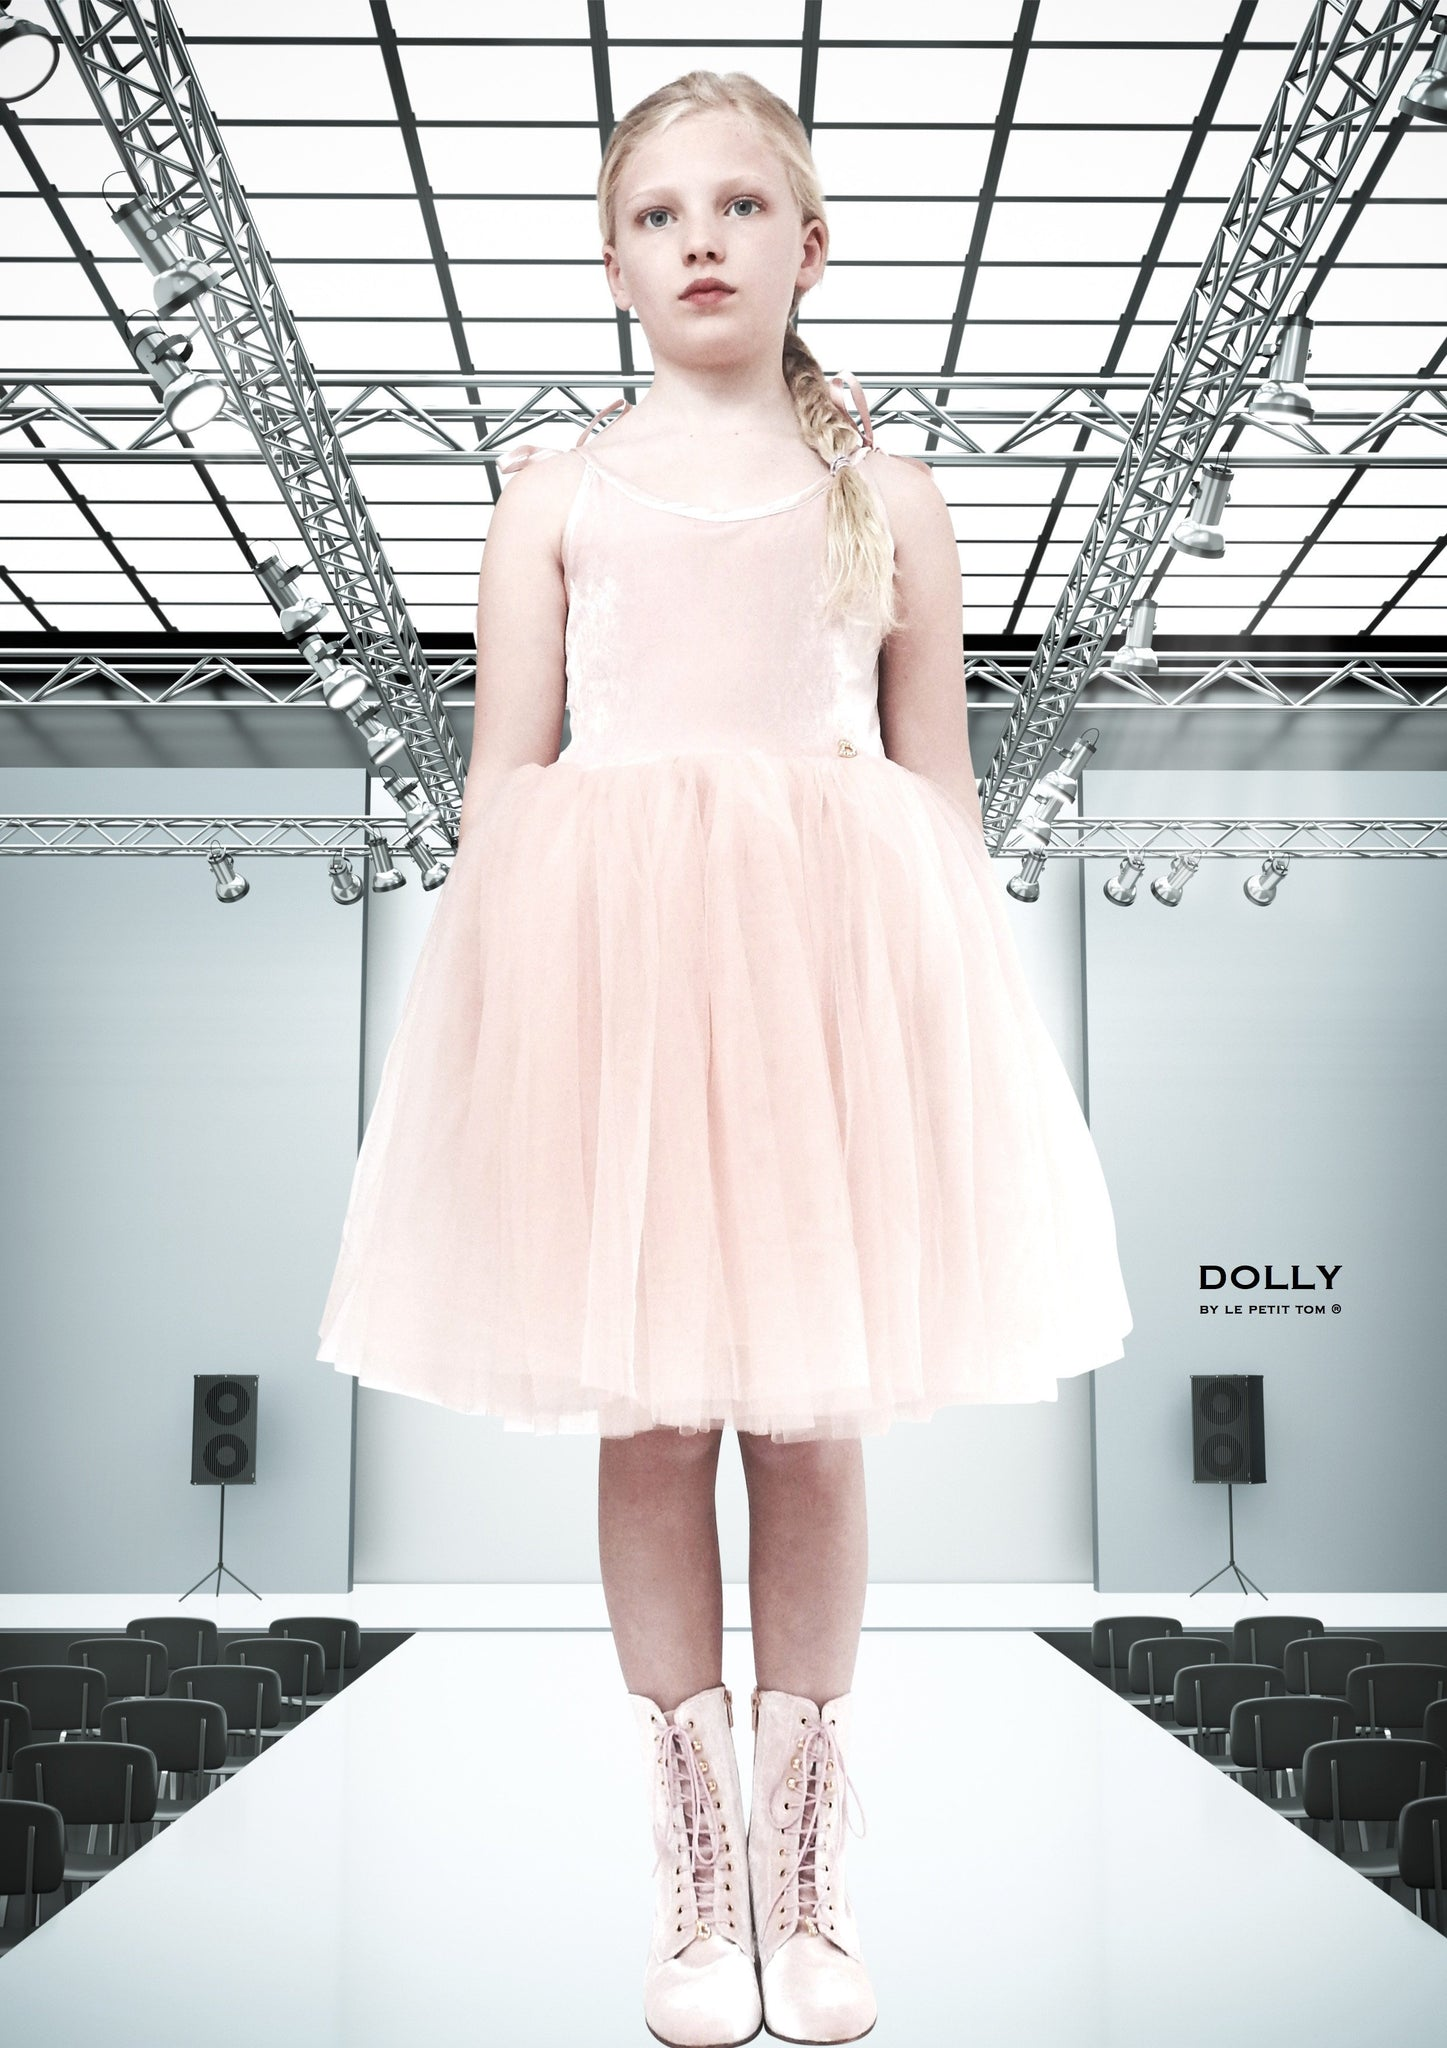 DOLLY by Le Petit Tom ® VELVET SABRINA TUTU dress ballet pink